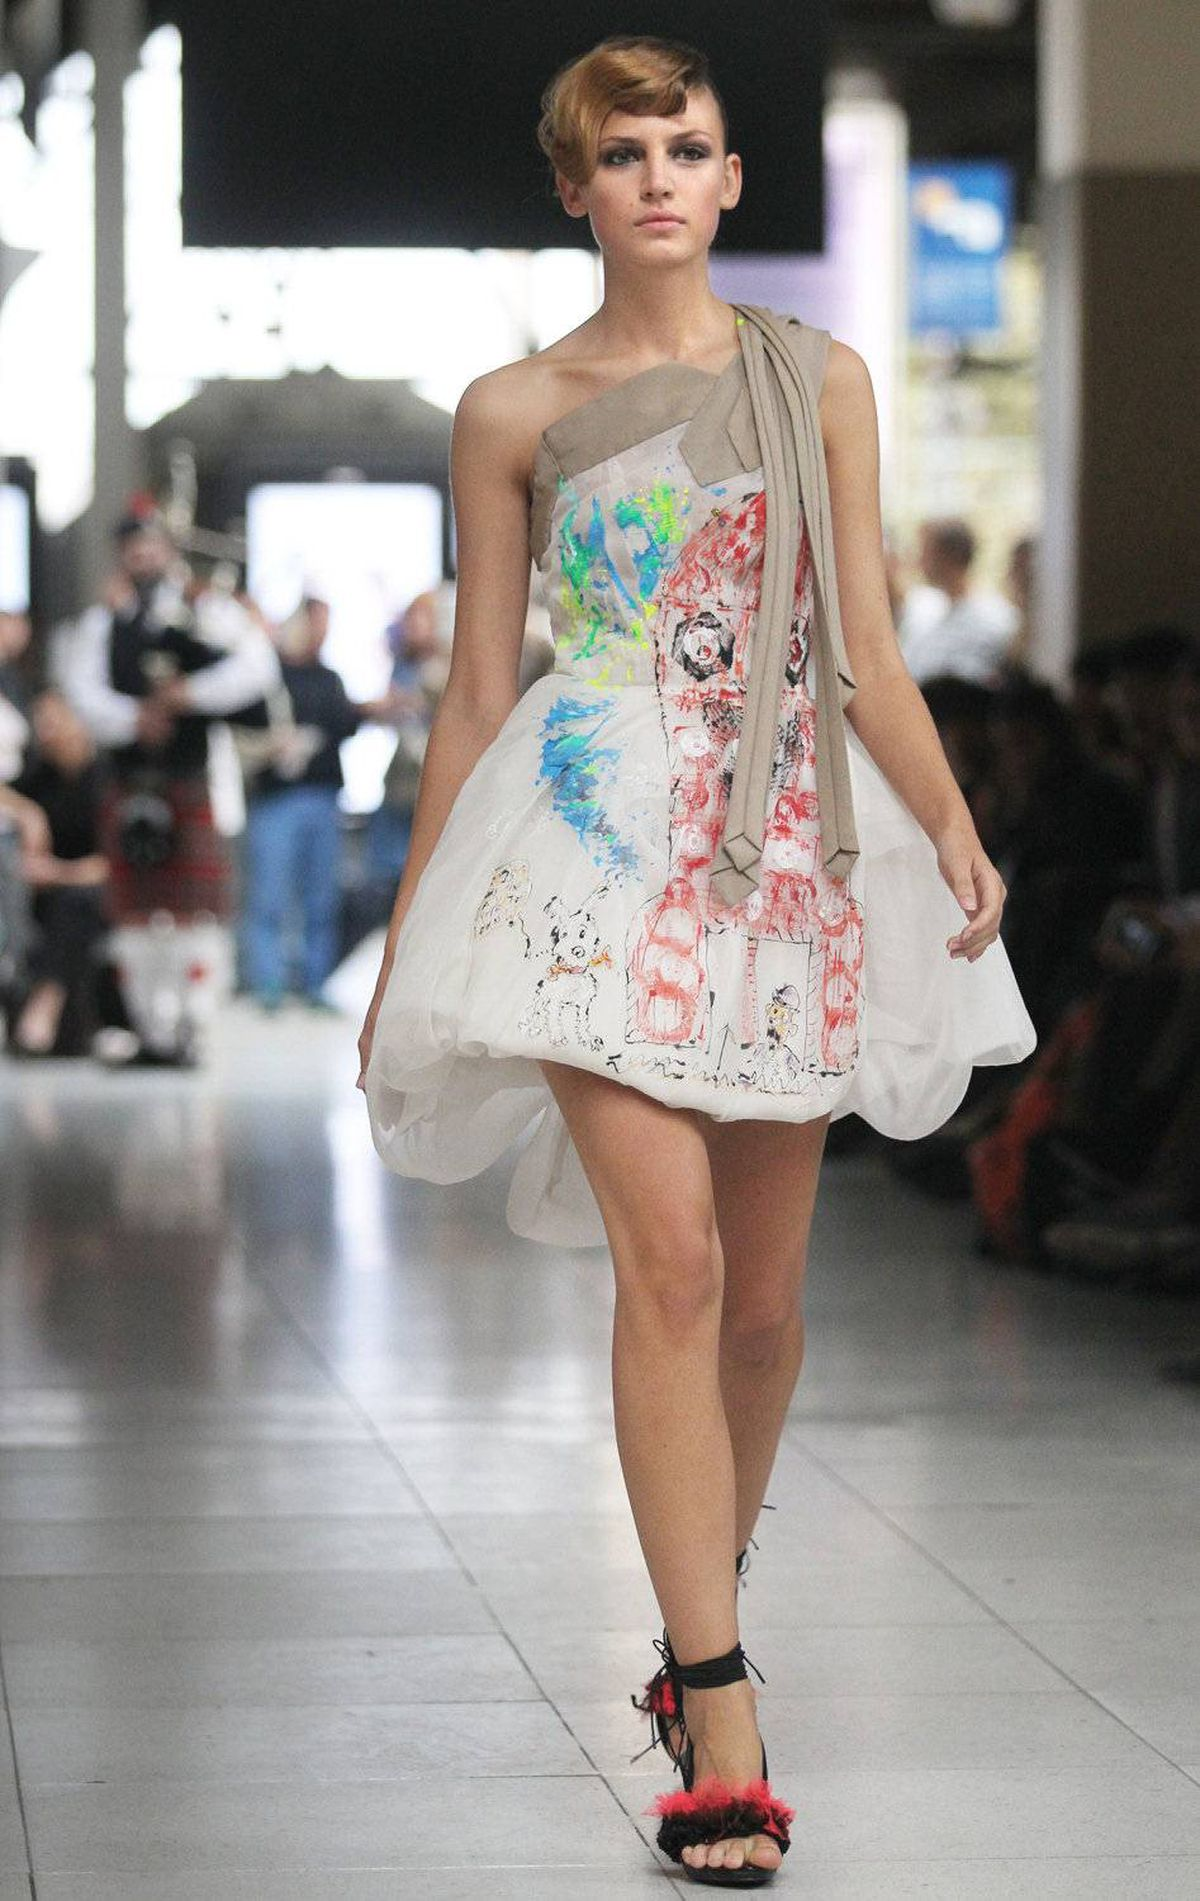 A model presents a creation by French designer Karim Bonnet for Impasse de la Defense during the spring/summer 2012 ready-to-wear collection show, on October 5, 2011 at the Austerlitz Train Station in Paris.